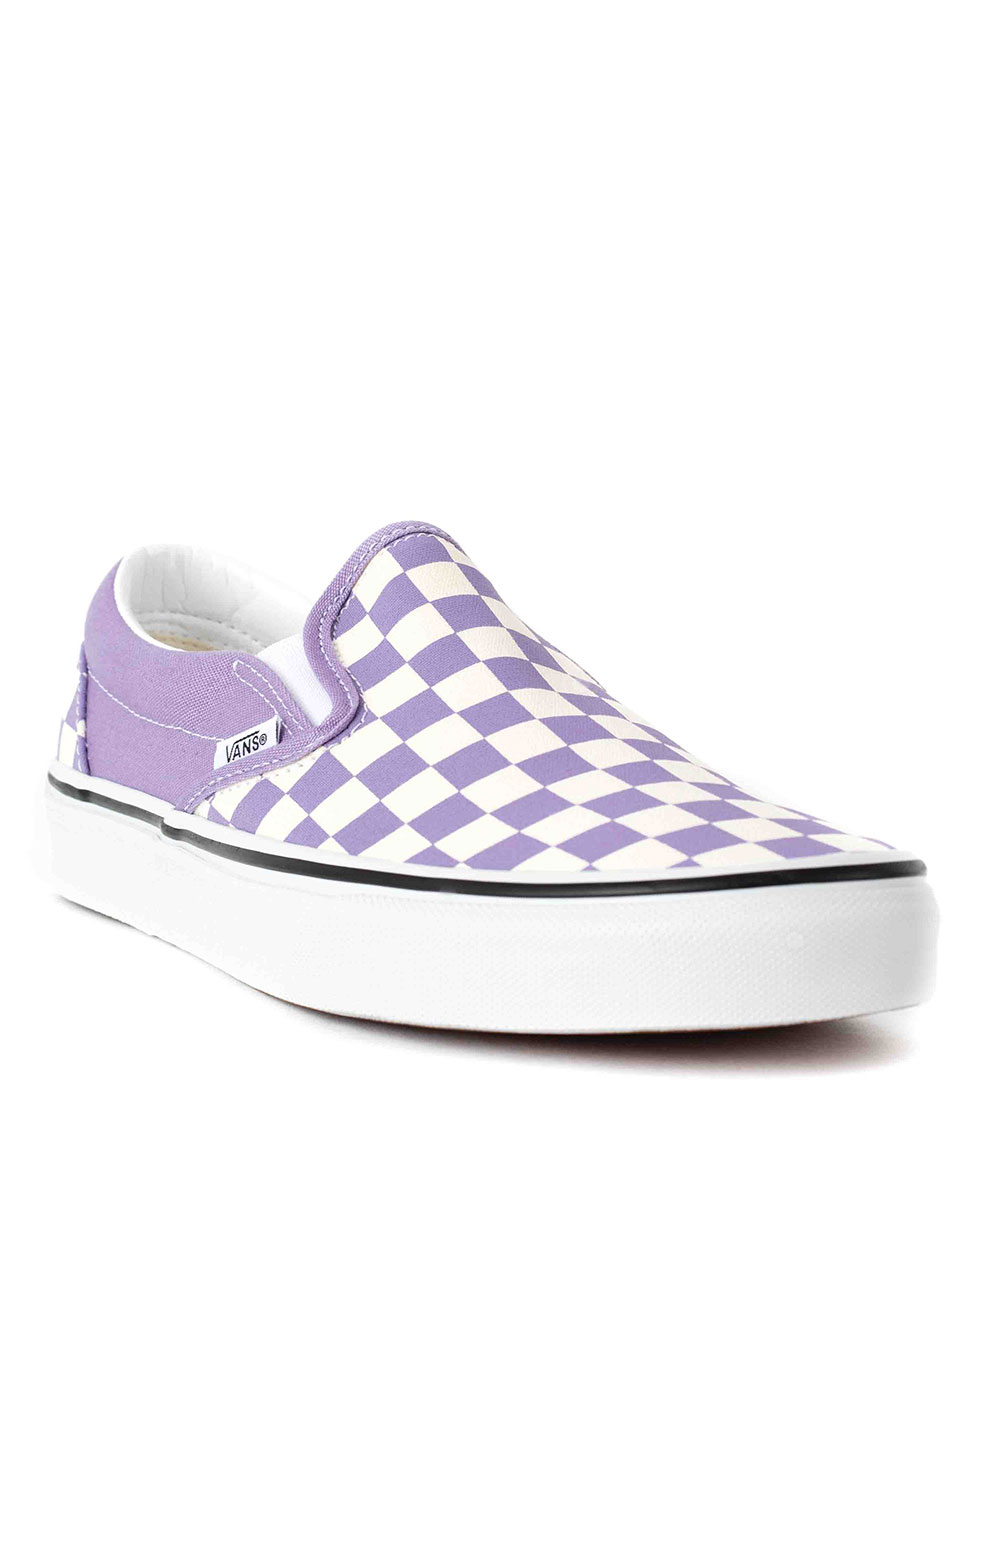 (3TB9HM) Checkerboard Classic Slip-On Shoes - Chalk Violet  3